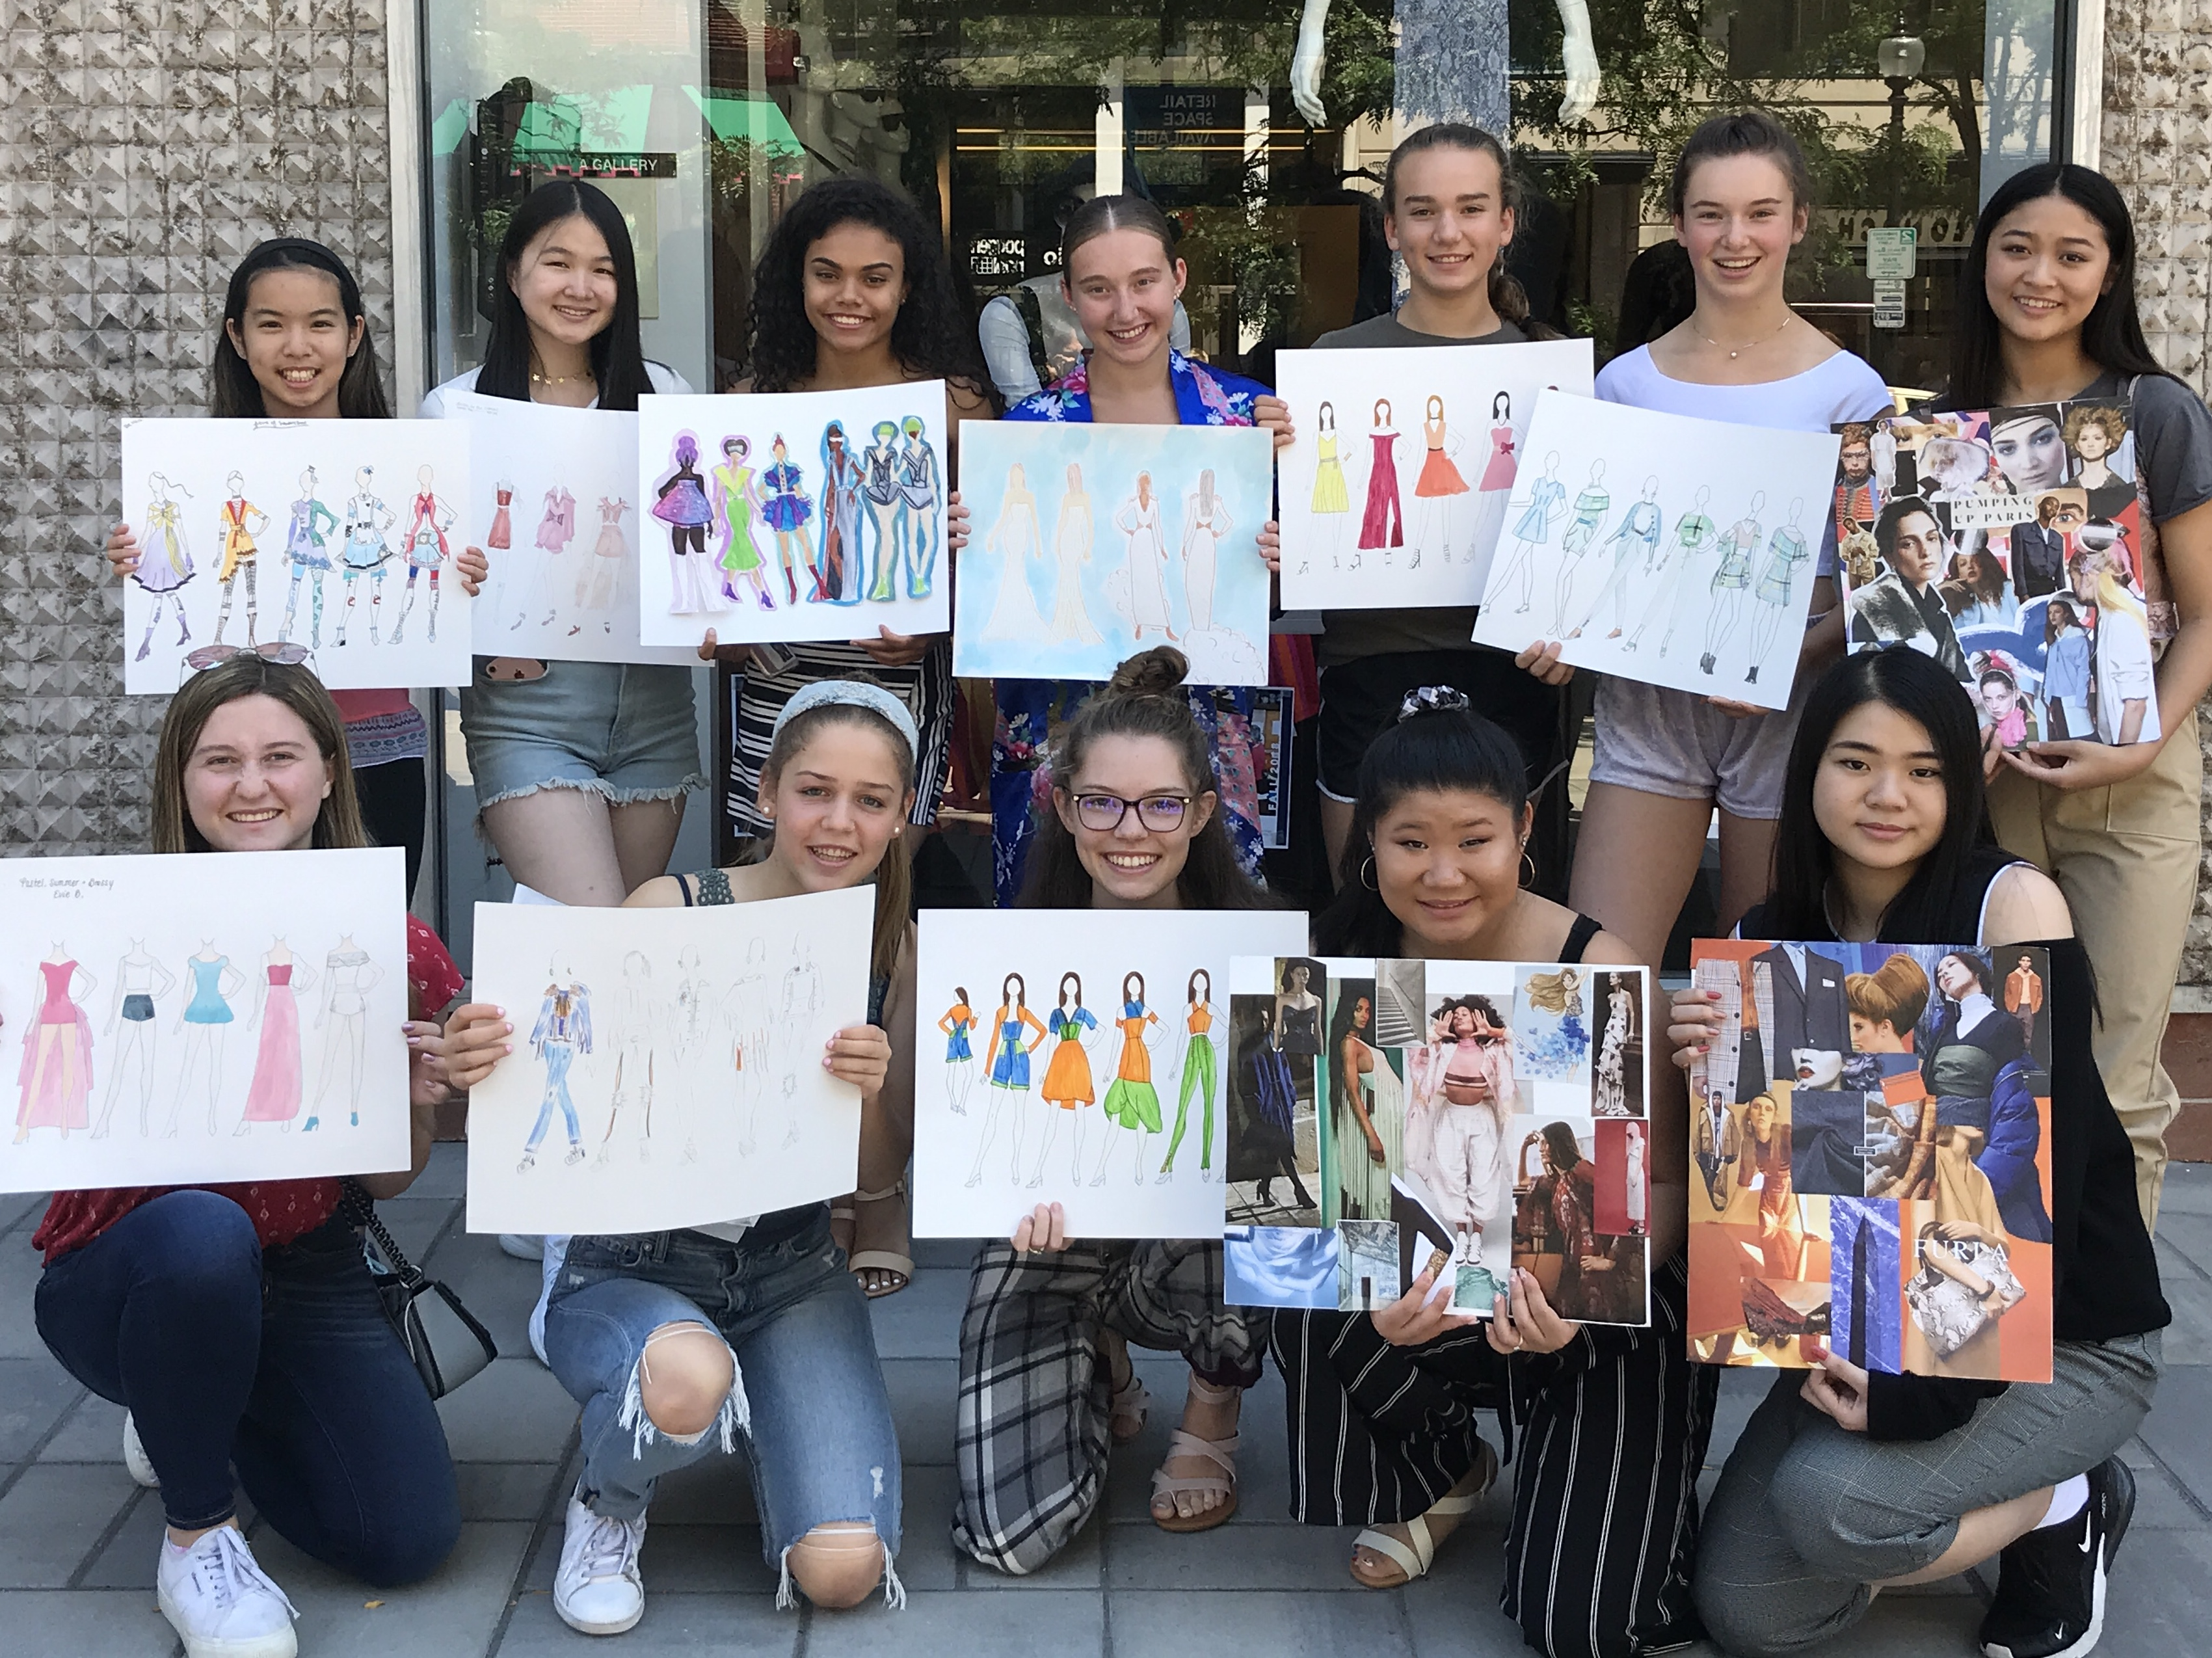 Summer Program Teen Fashion Clinics - School of Fashion Design